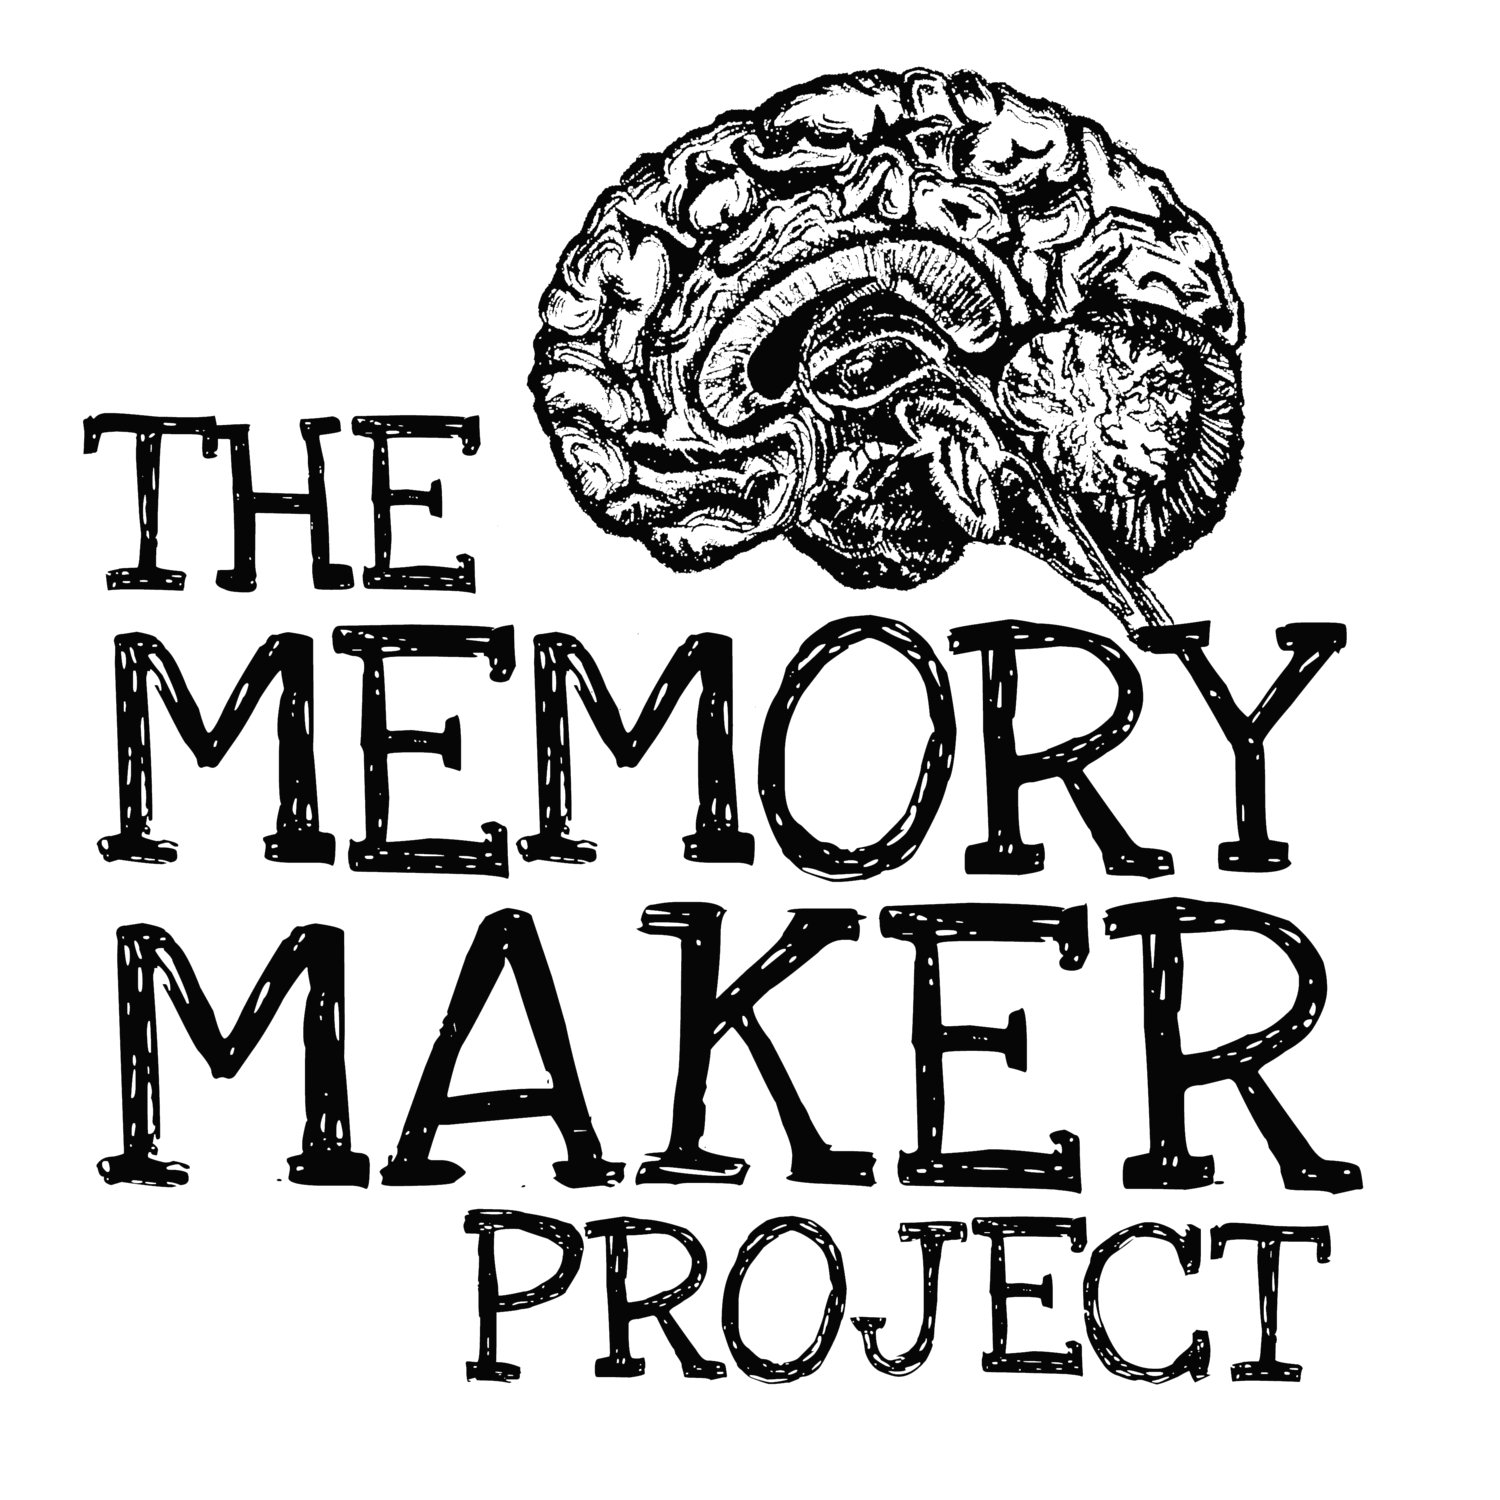 The Memory MakerProject